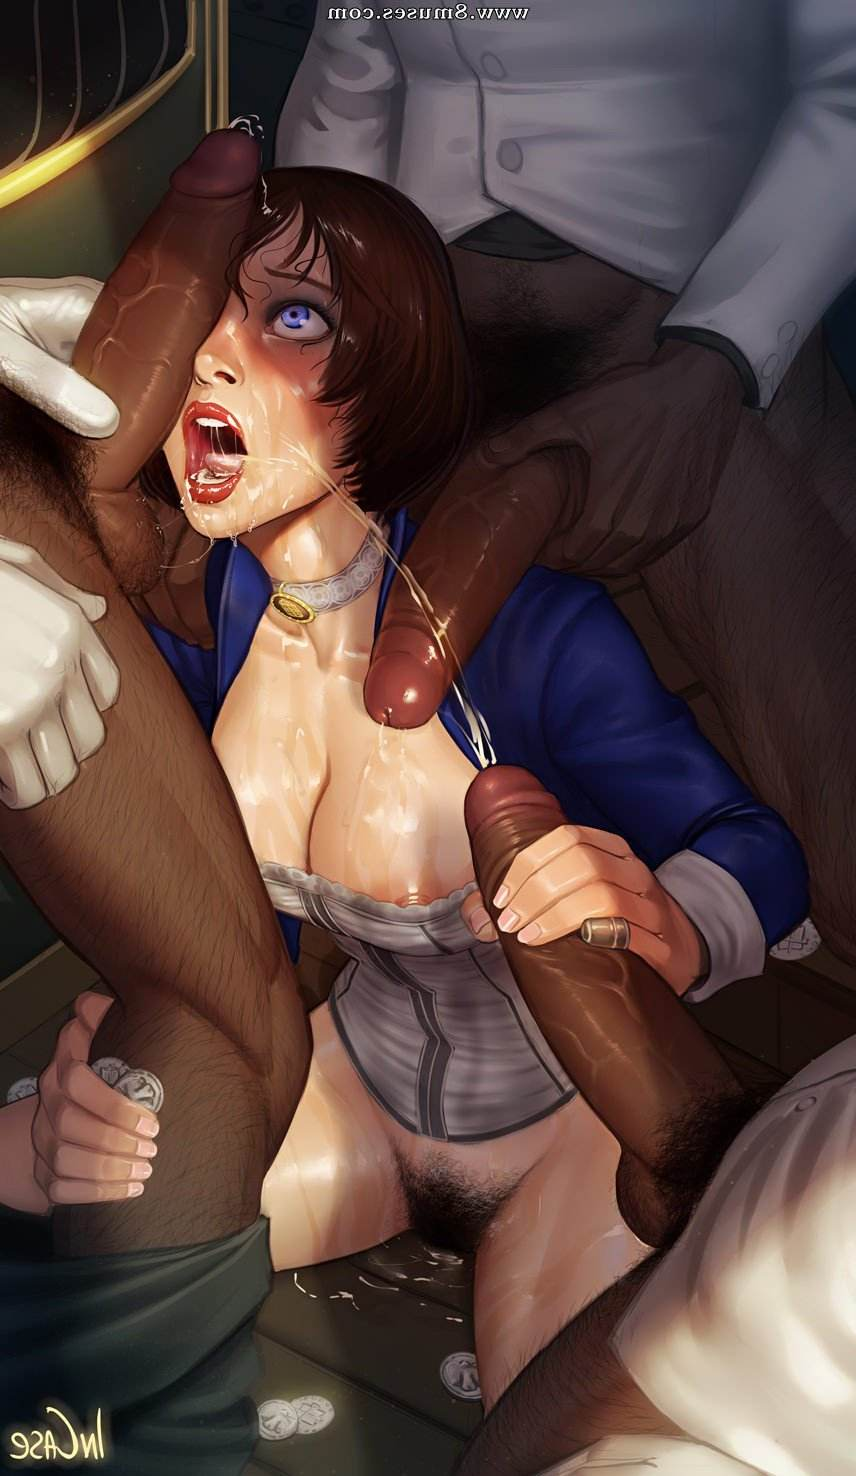 Incase-Comics/Artwork Artwork__8muses_-_Sex_and_Porn_Comics_281.jpg